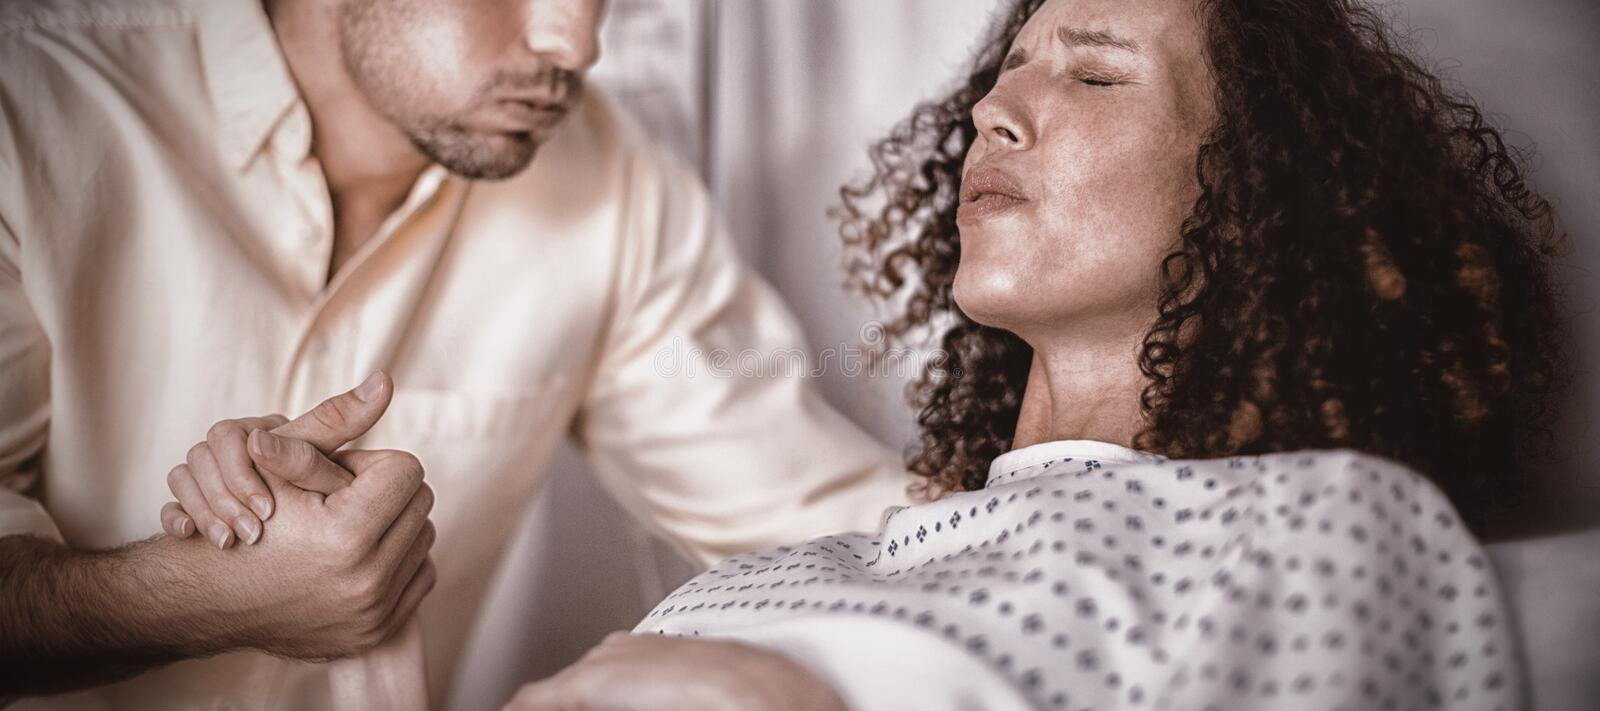 Man comforting pregnant woman during labor in ward royalty free stock image